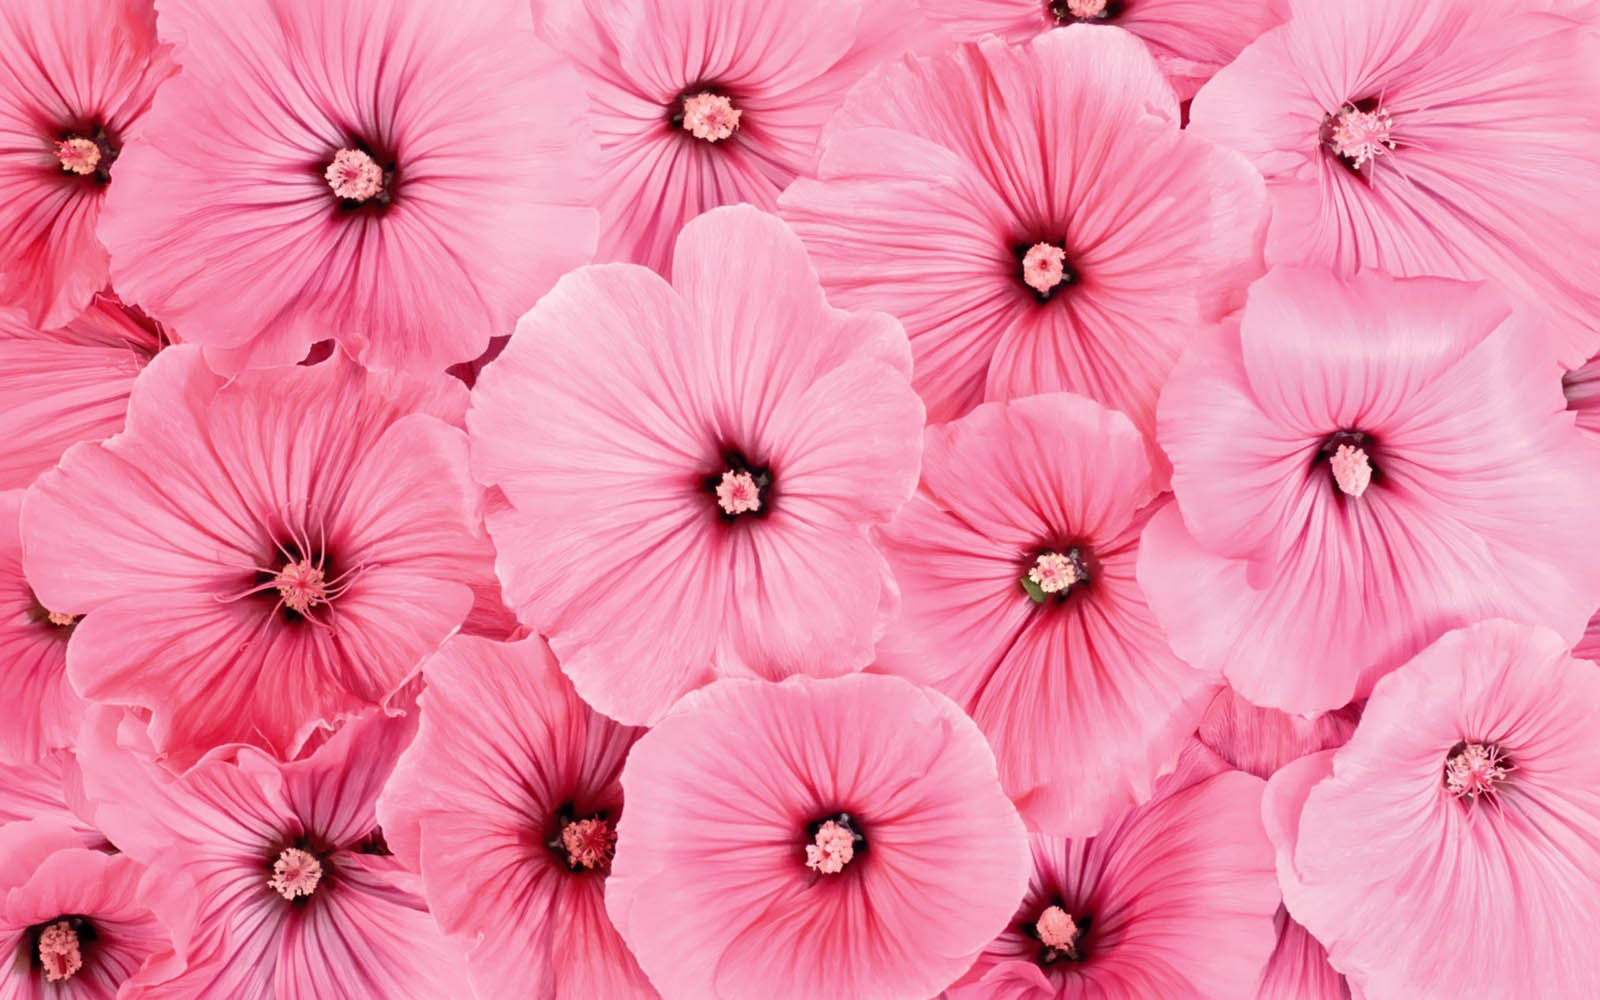 70 ] Pink Flowers Desktop Wallpaper On WallpaperSafari